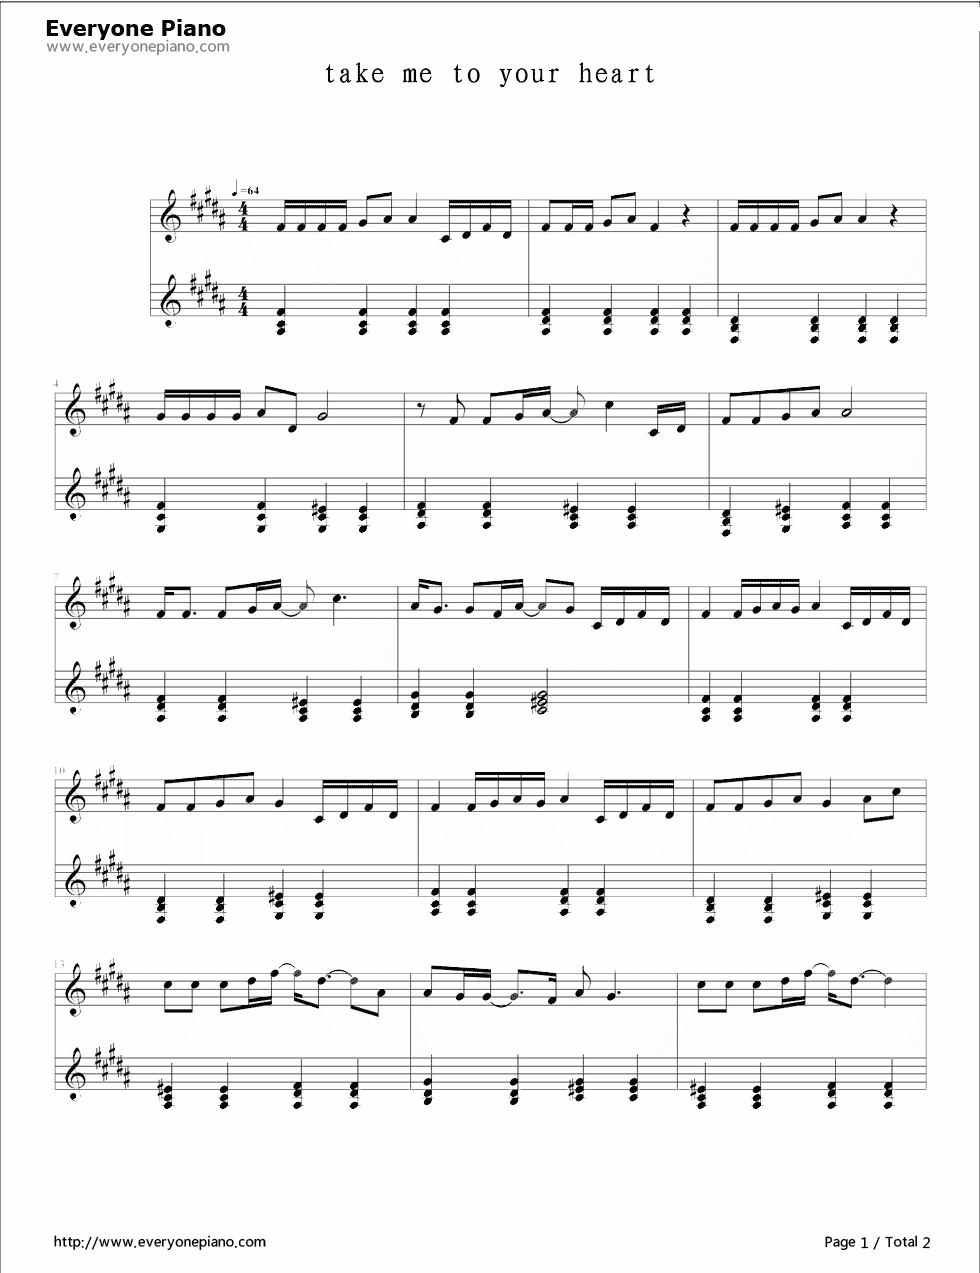 Take me to your heart stave preview 1 free piano sheet music listen now print sheet take me to your heart stave preview 1 hexwebz Images